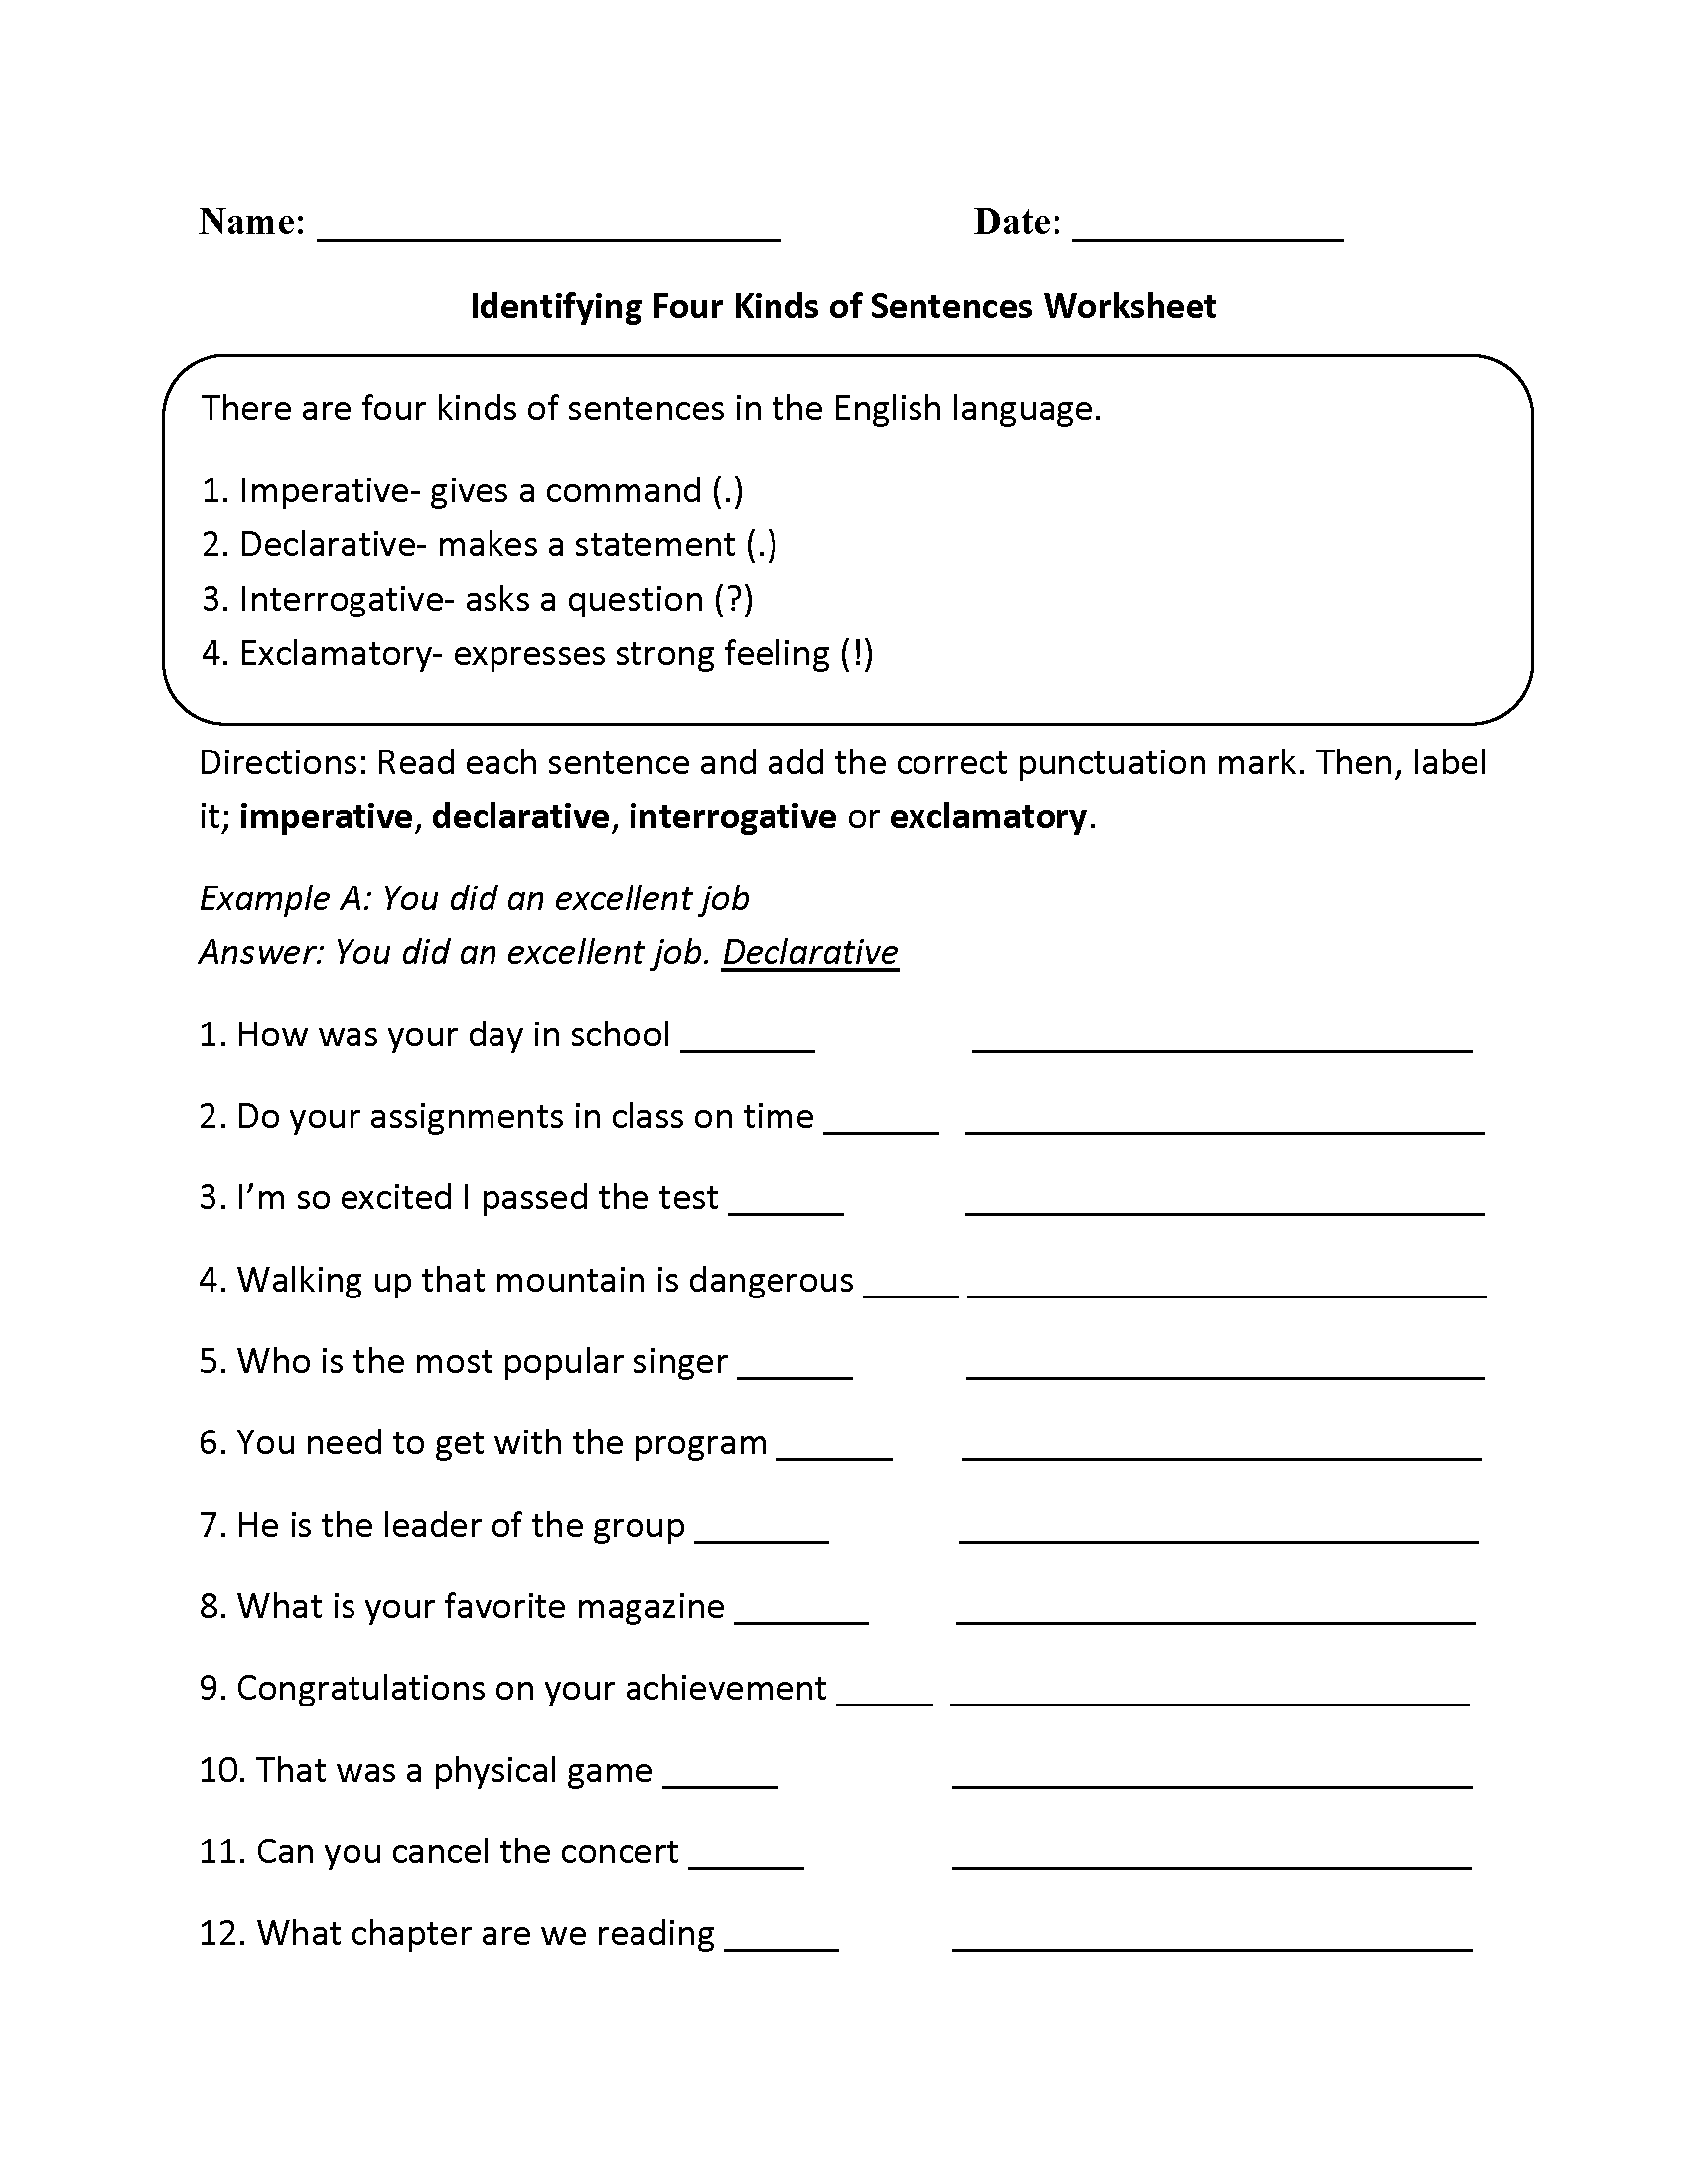 Worksheets Types Of Sentences Worksheets sentences worksheets kinds of four worksheet